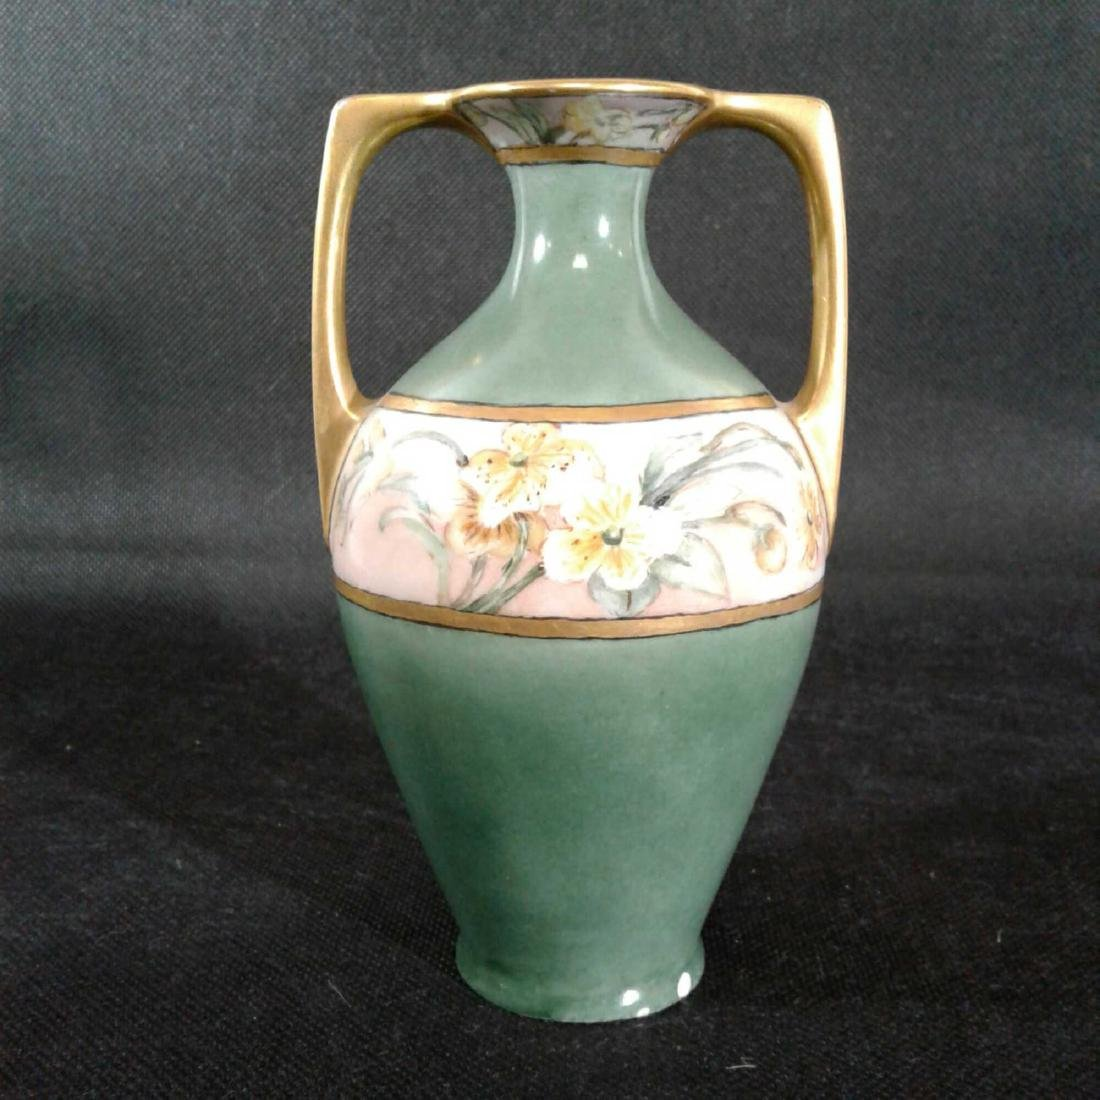 Signed Heise Green and Gold Flowered Vase - 5